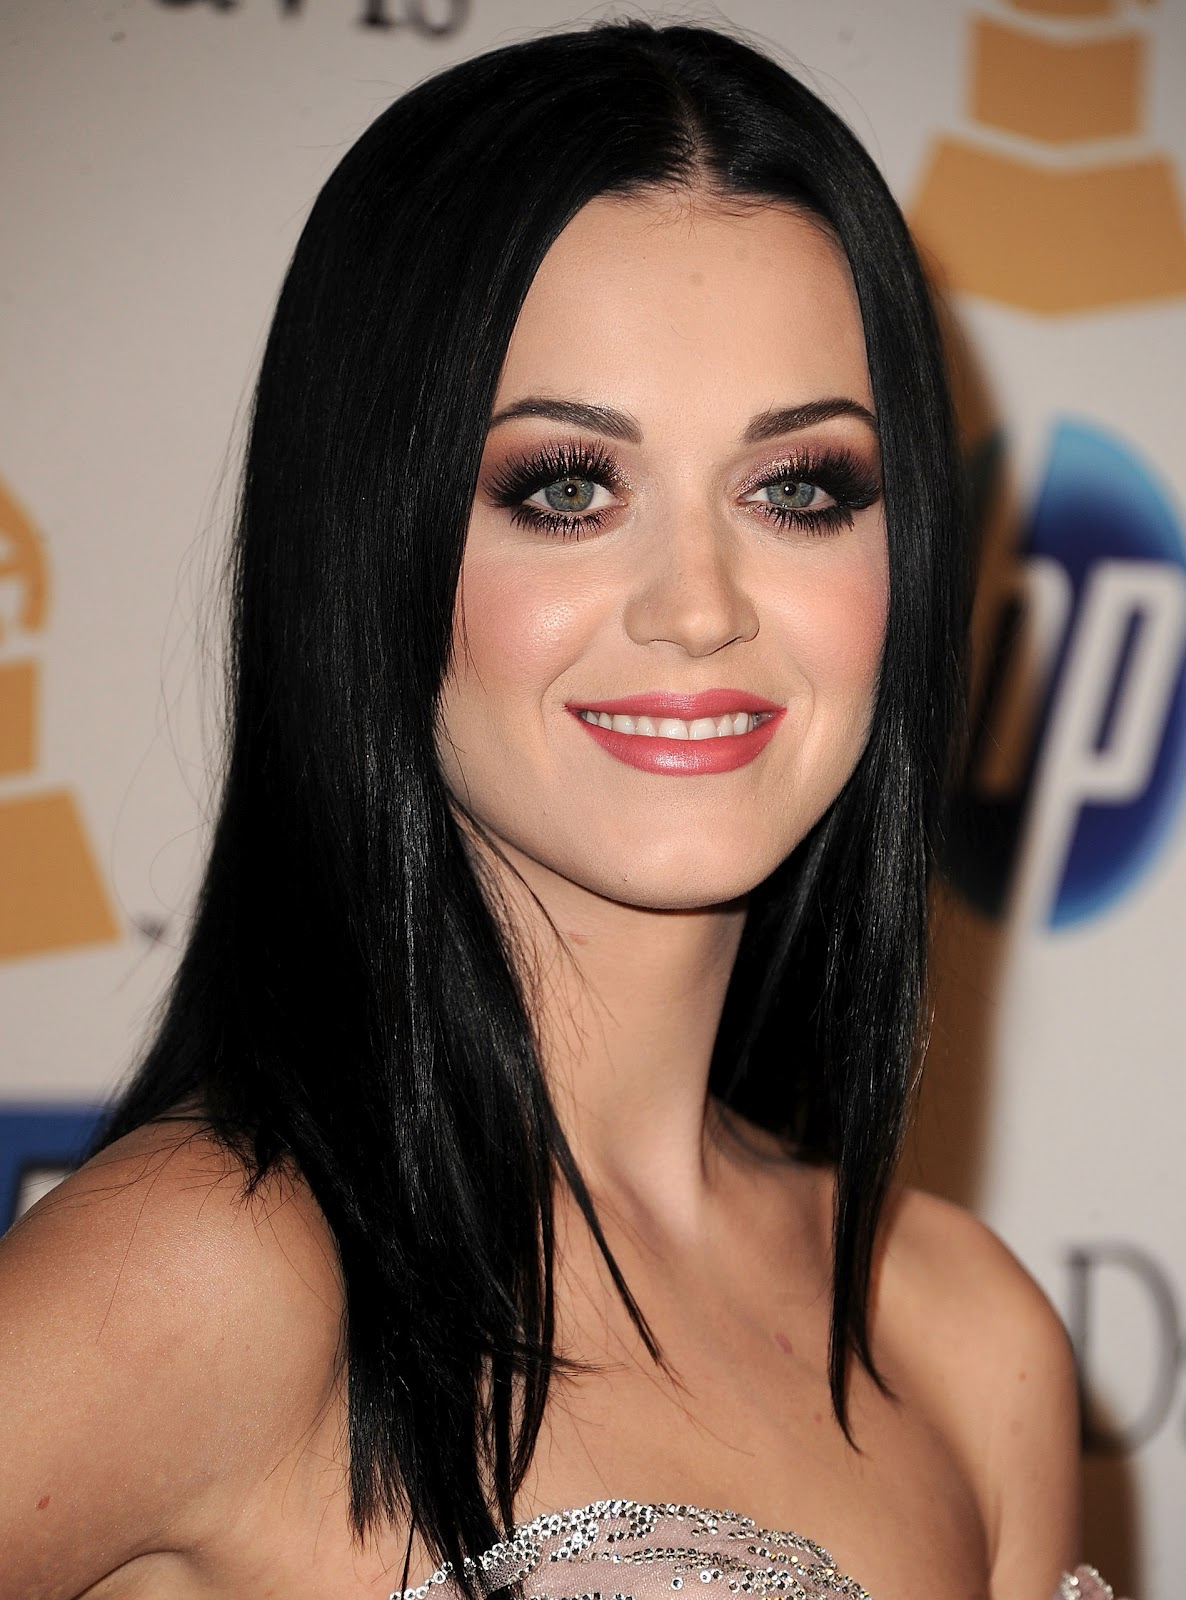 http://3.bp.blogspot.com/-YKI9CJfQMpY/T-yiVwcarkI/AAAAAAAAEFU/V3Rc2KQKDNc/s1600/Katy-Perry-2011-Pre-Grammy-Gala-and-Salute-To-Industry-Icons-katy-perry-19631360-1897-2560.jpg